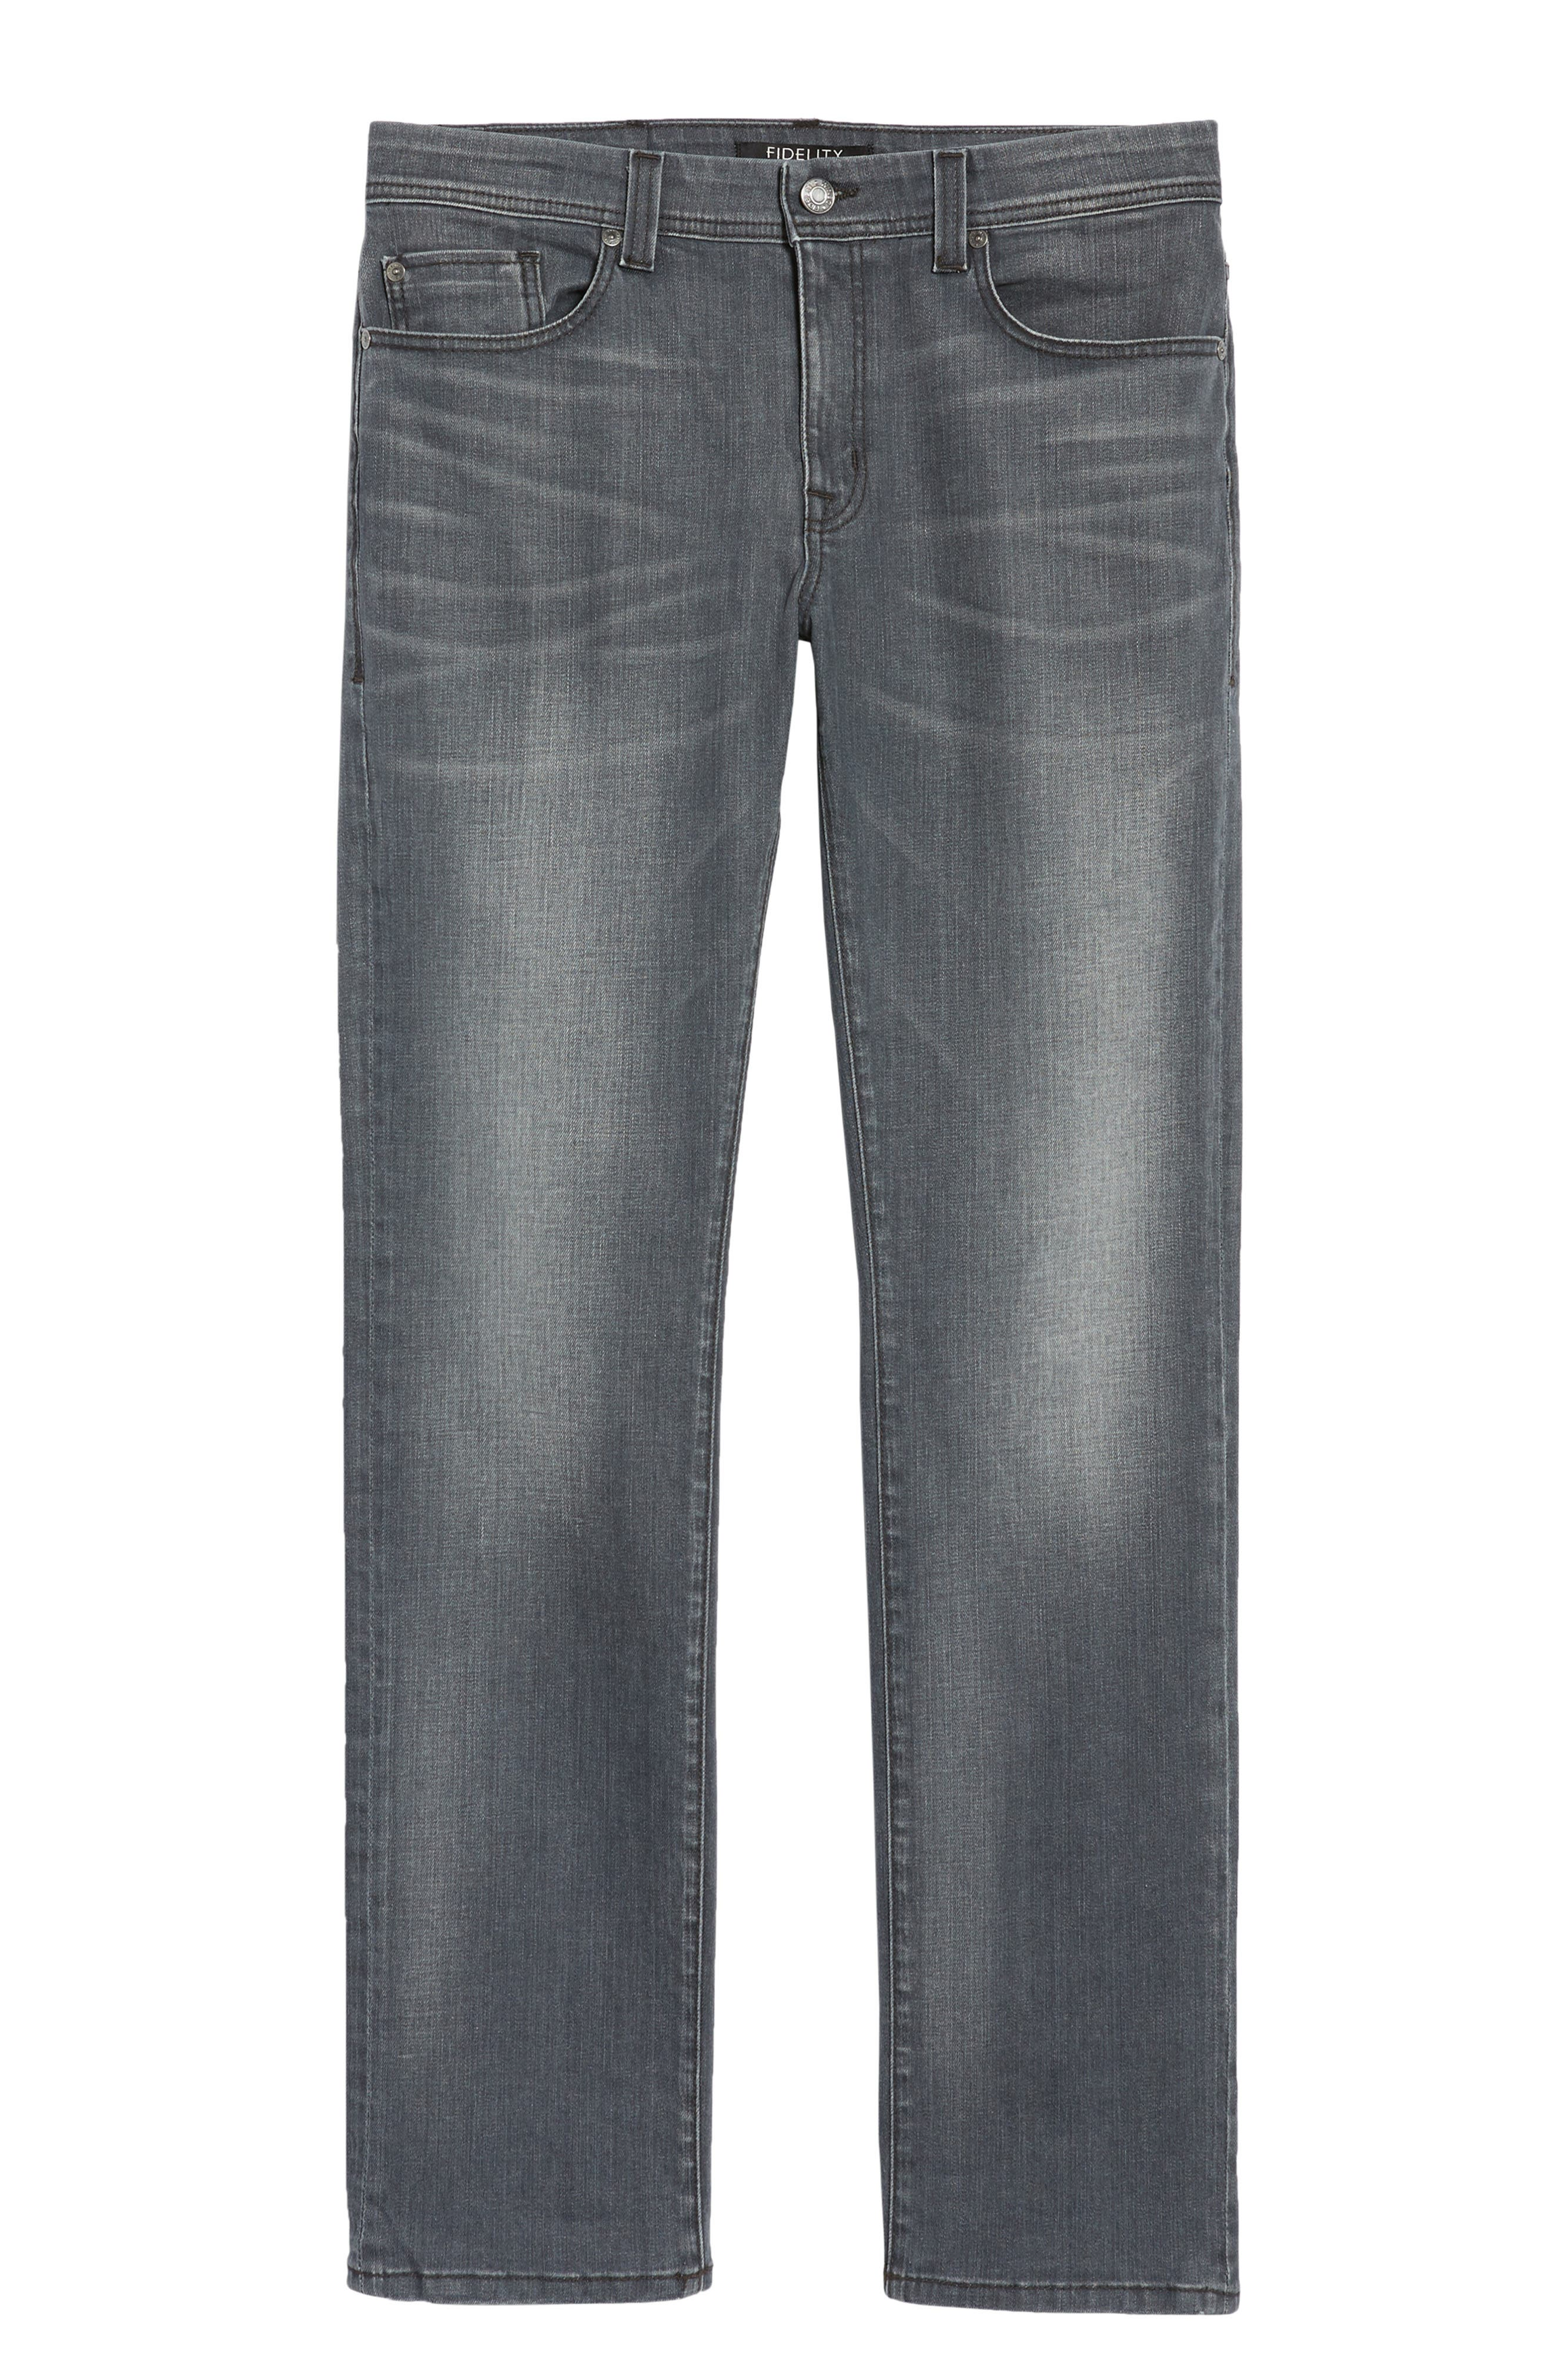 Jimmy Slim Straight Fit Jeans,                             Alternate thumbnail 6, color,                             020